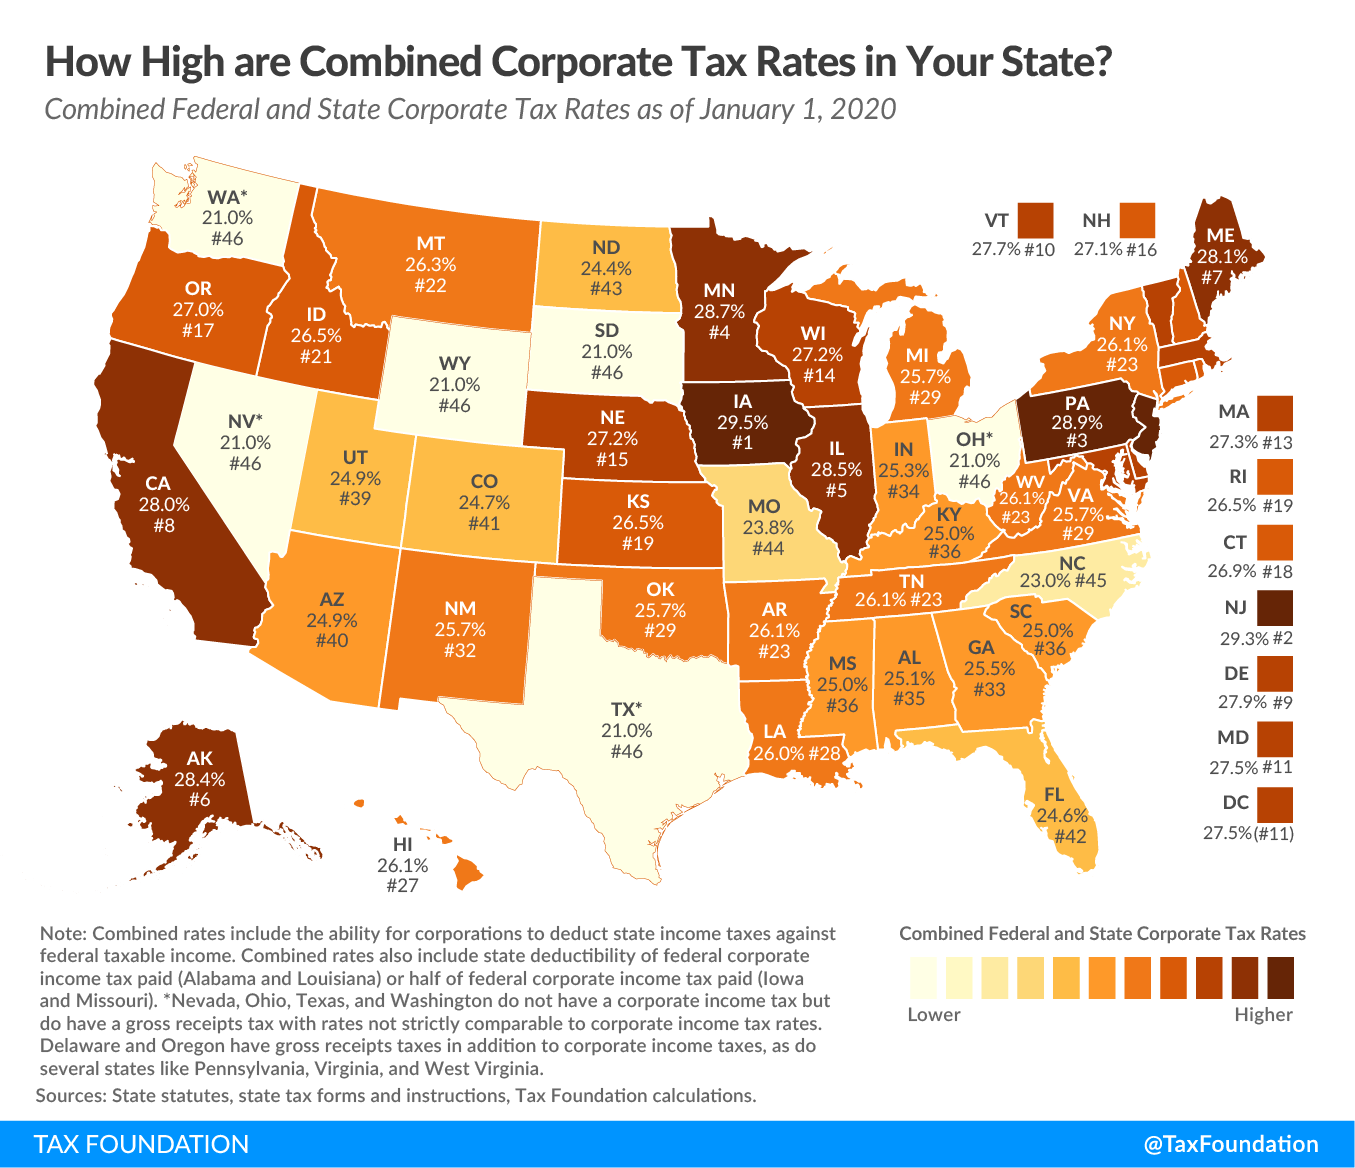 State Corporate Income Taxes Increase Tax Burden on Corporate Profits, State Corporate Taxes